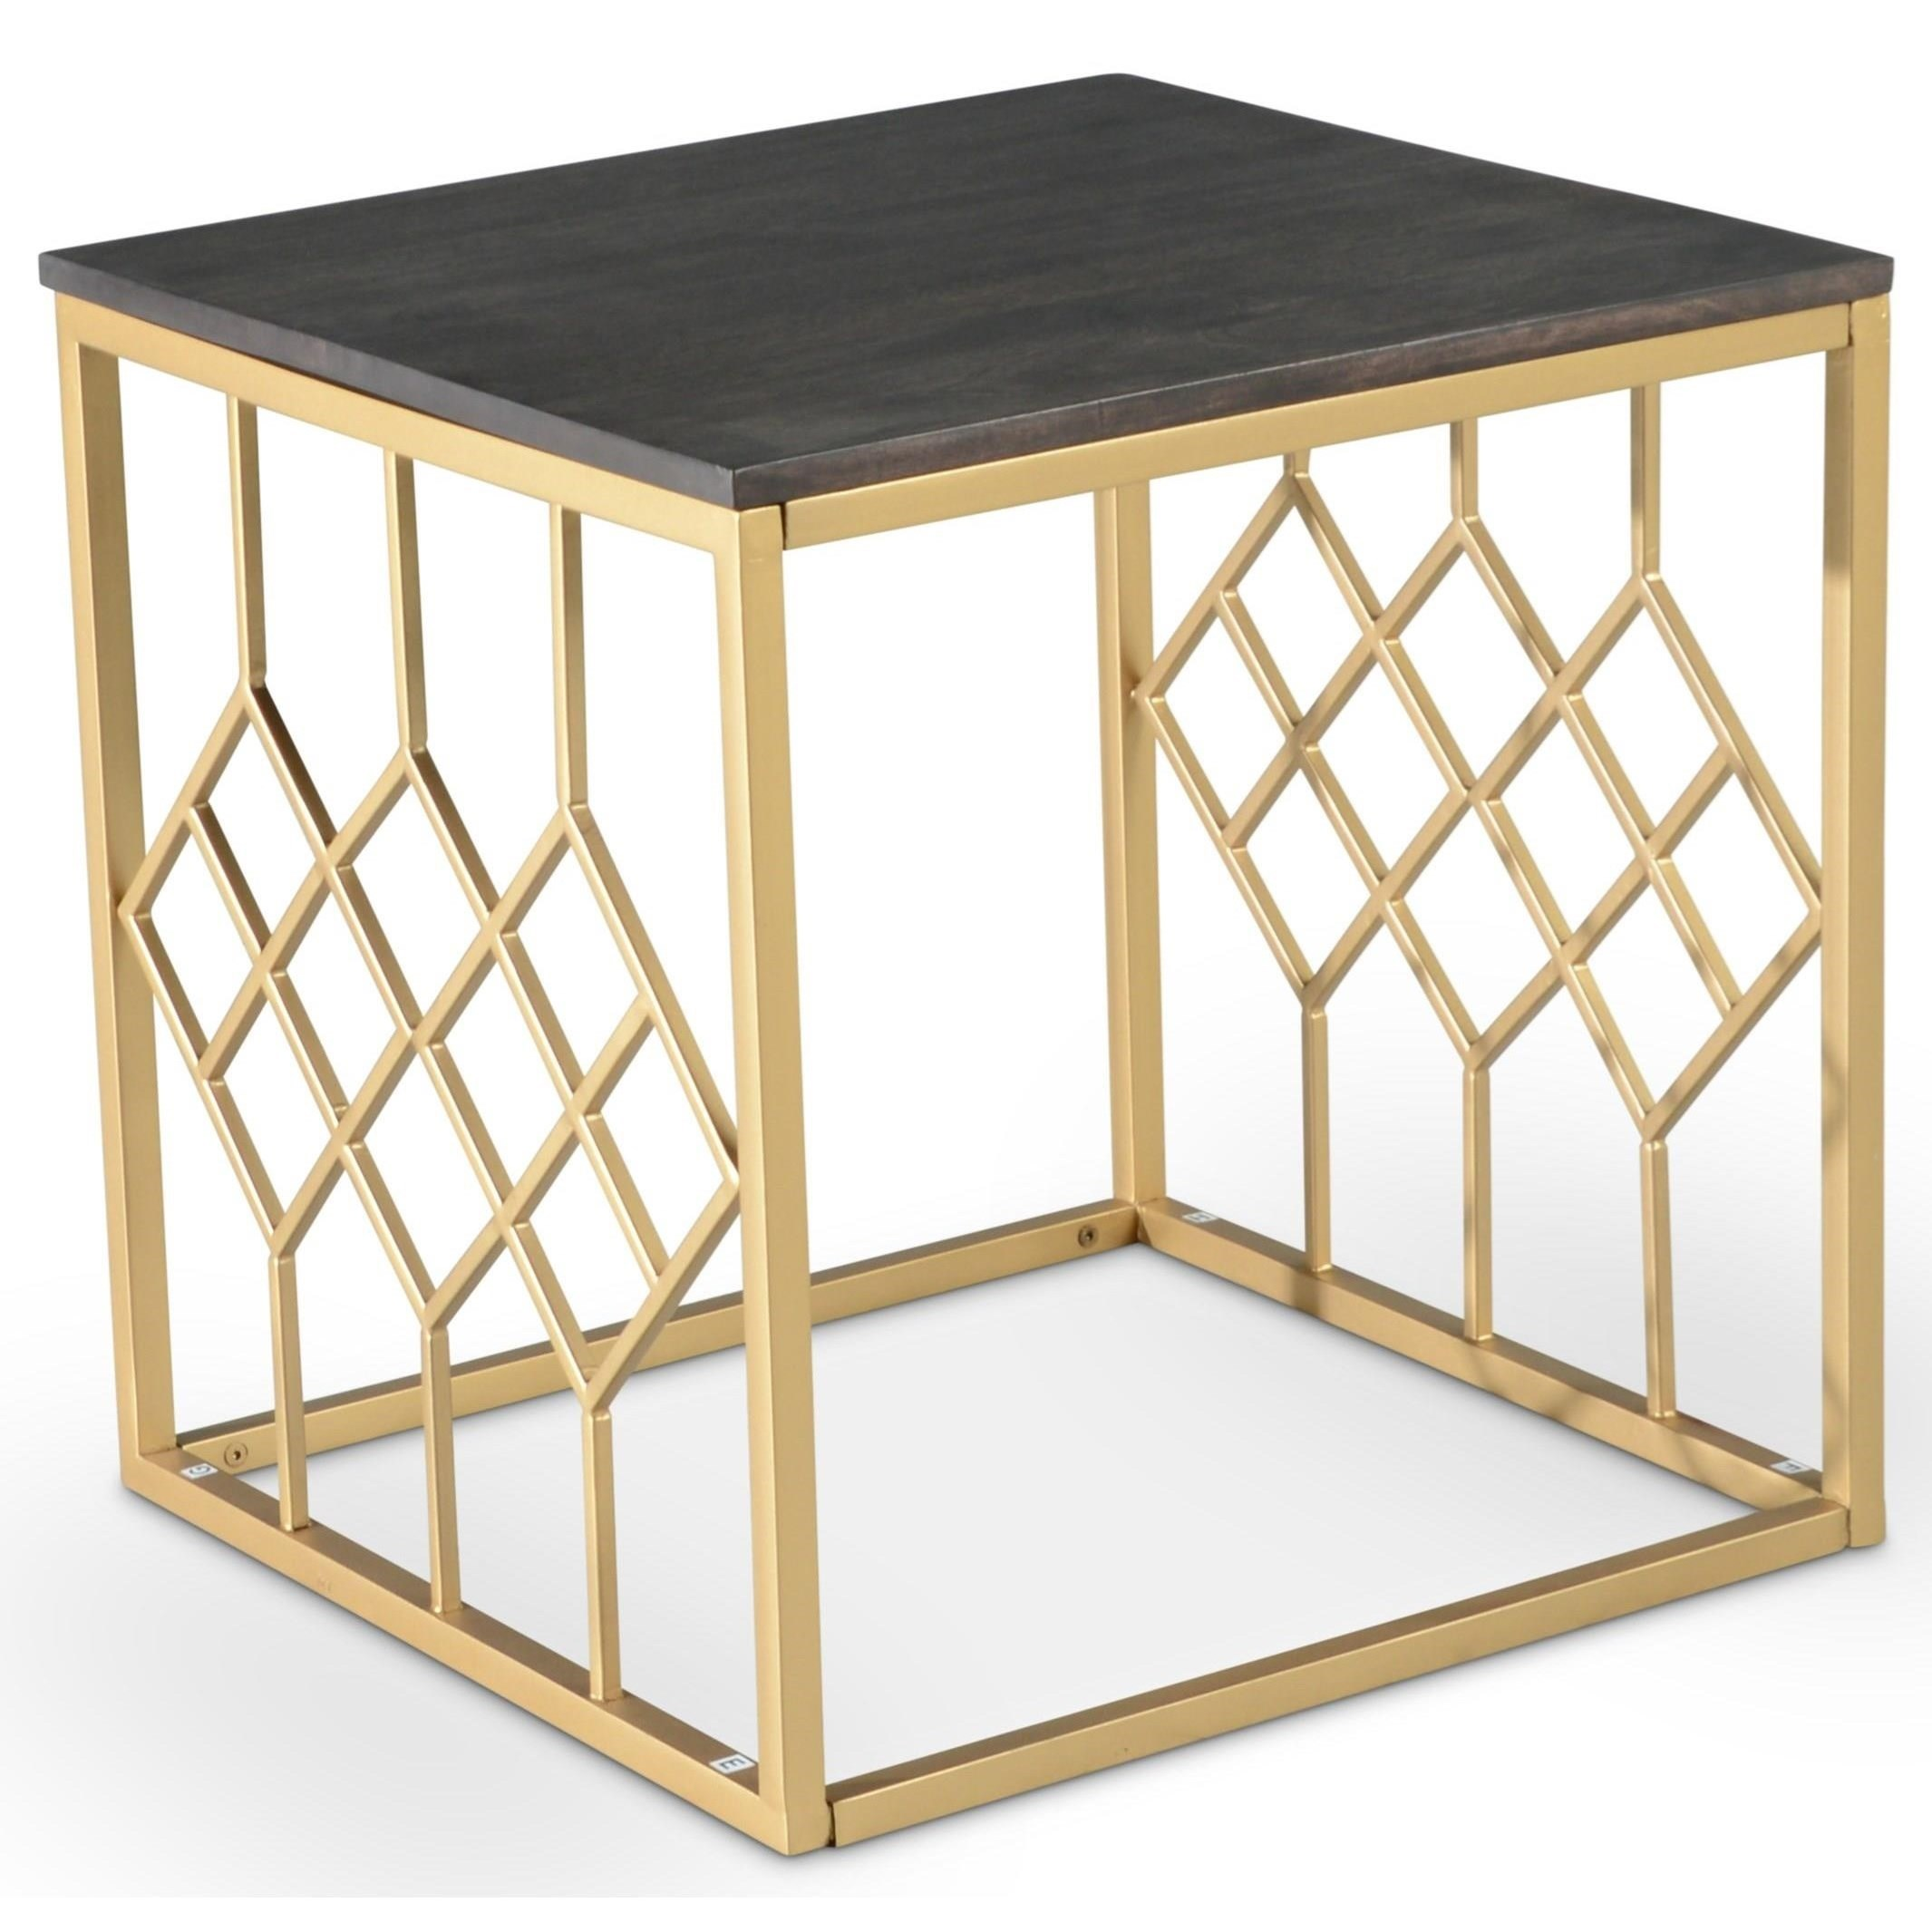 Beatrix Square End Table by Steve Silver at Northeast Factory Direct